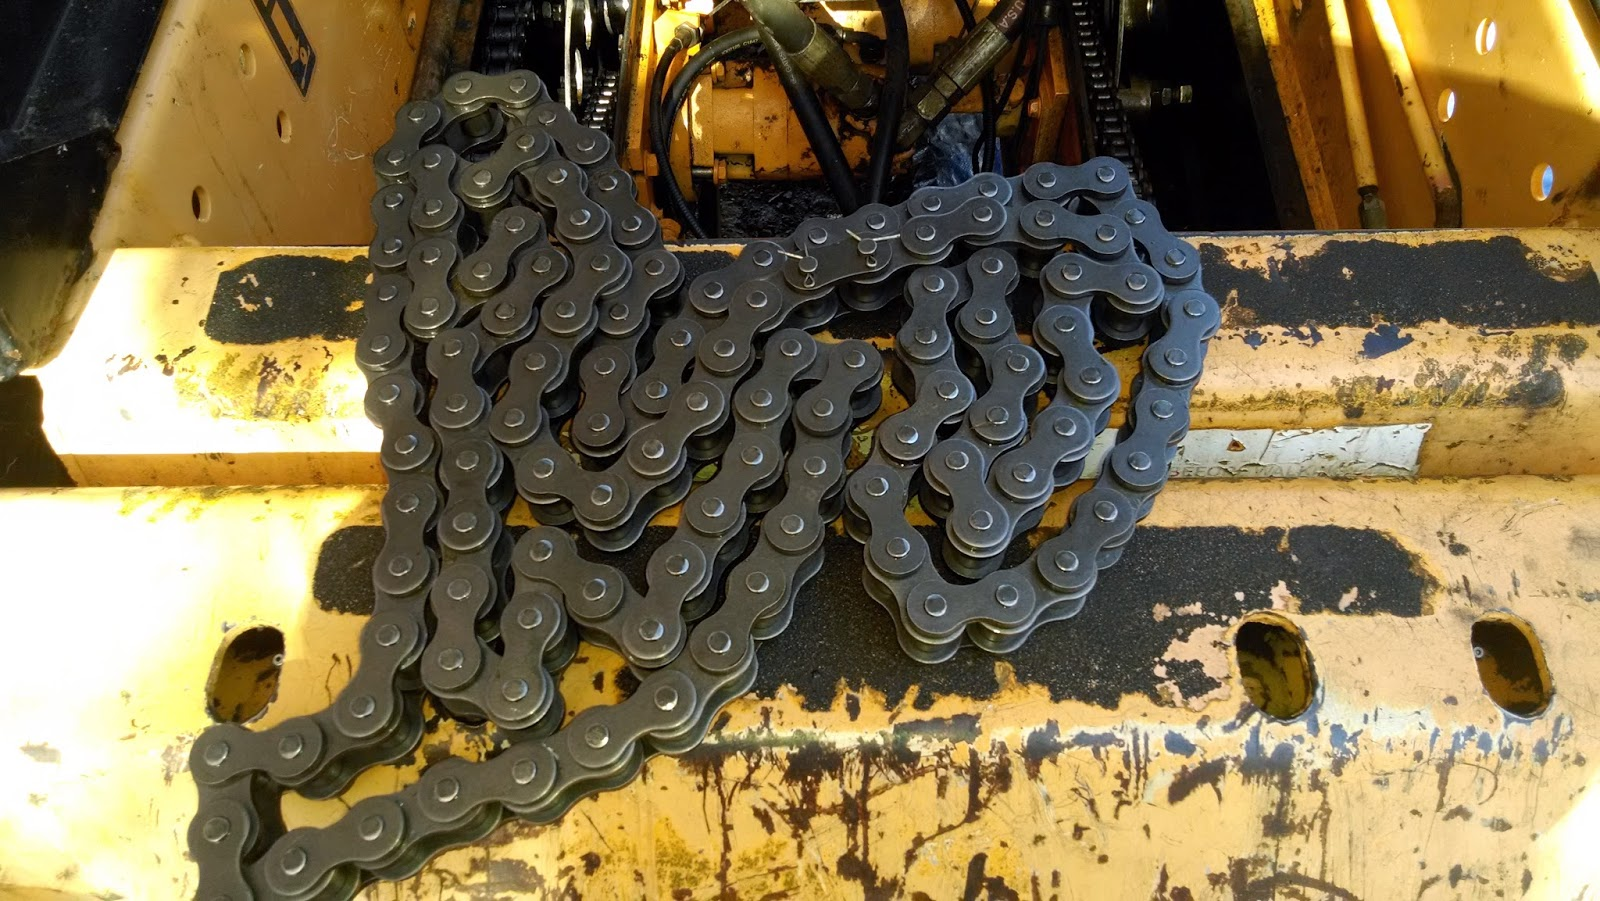 Mustang 940 Skid Loader: Bearing, Chain, and sprocket